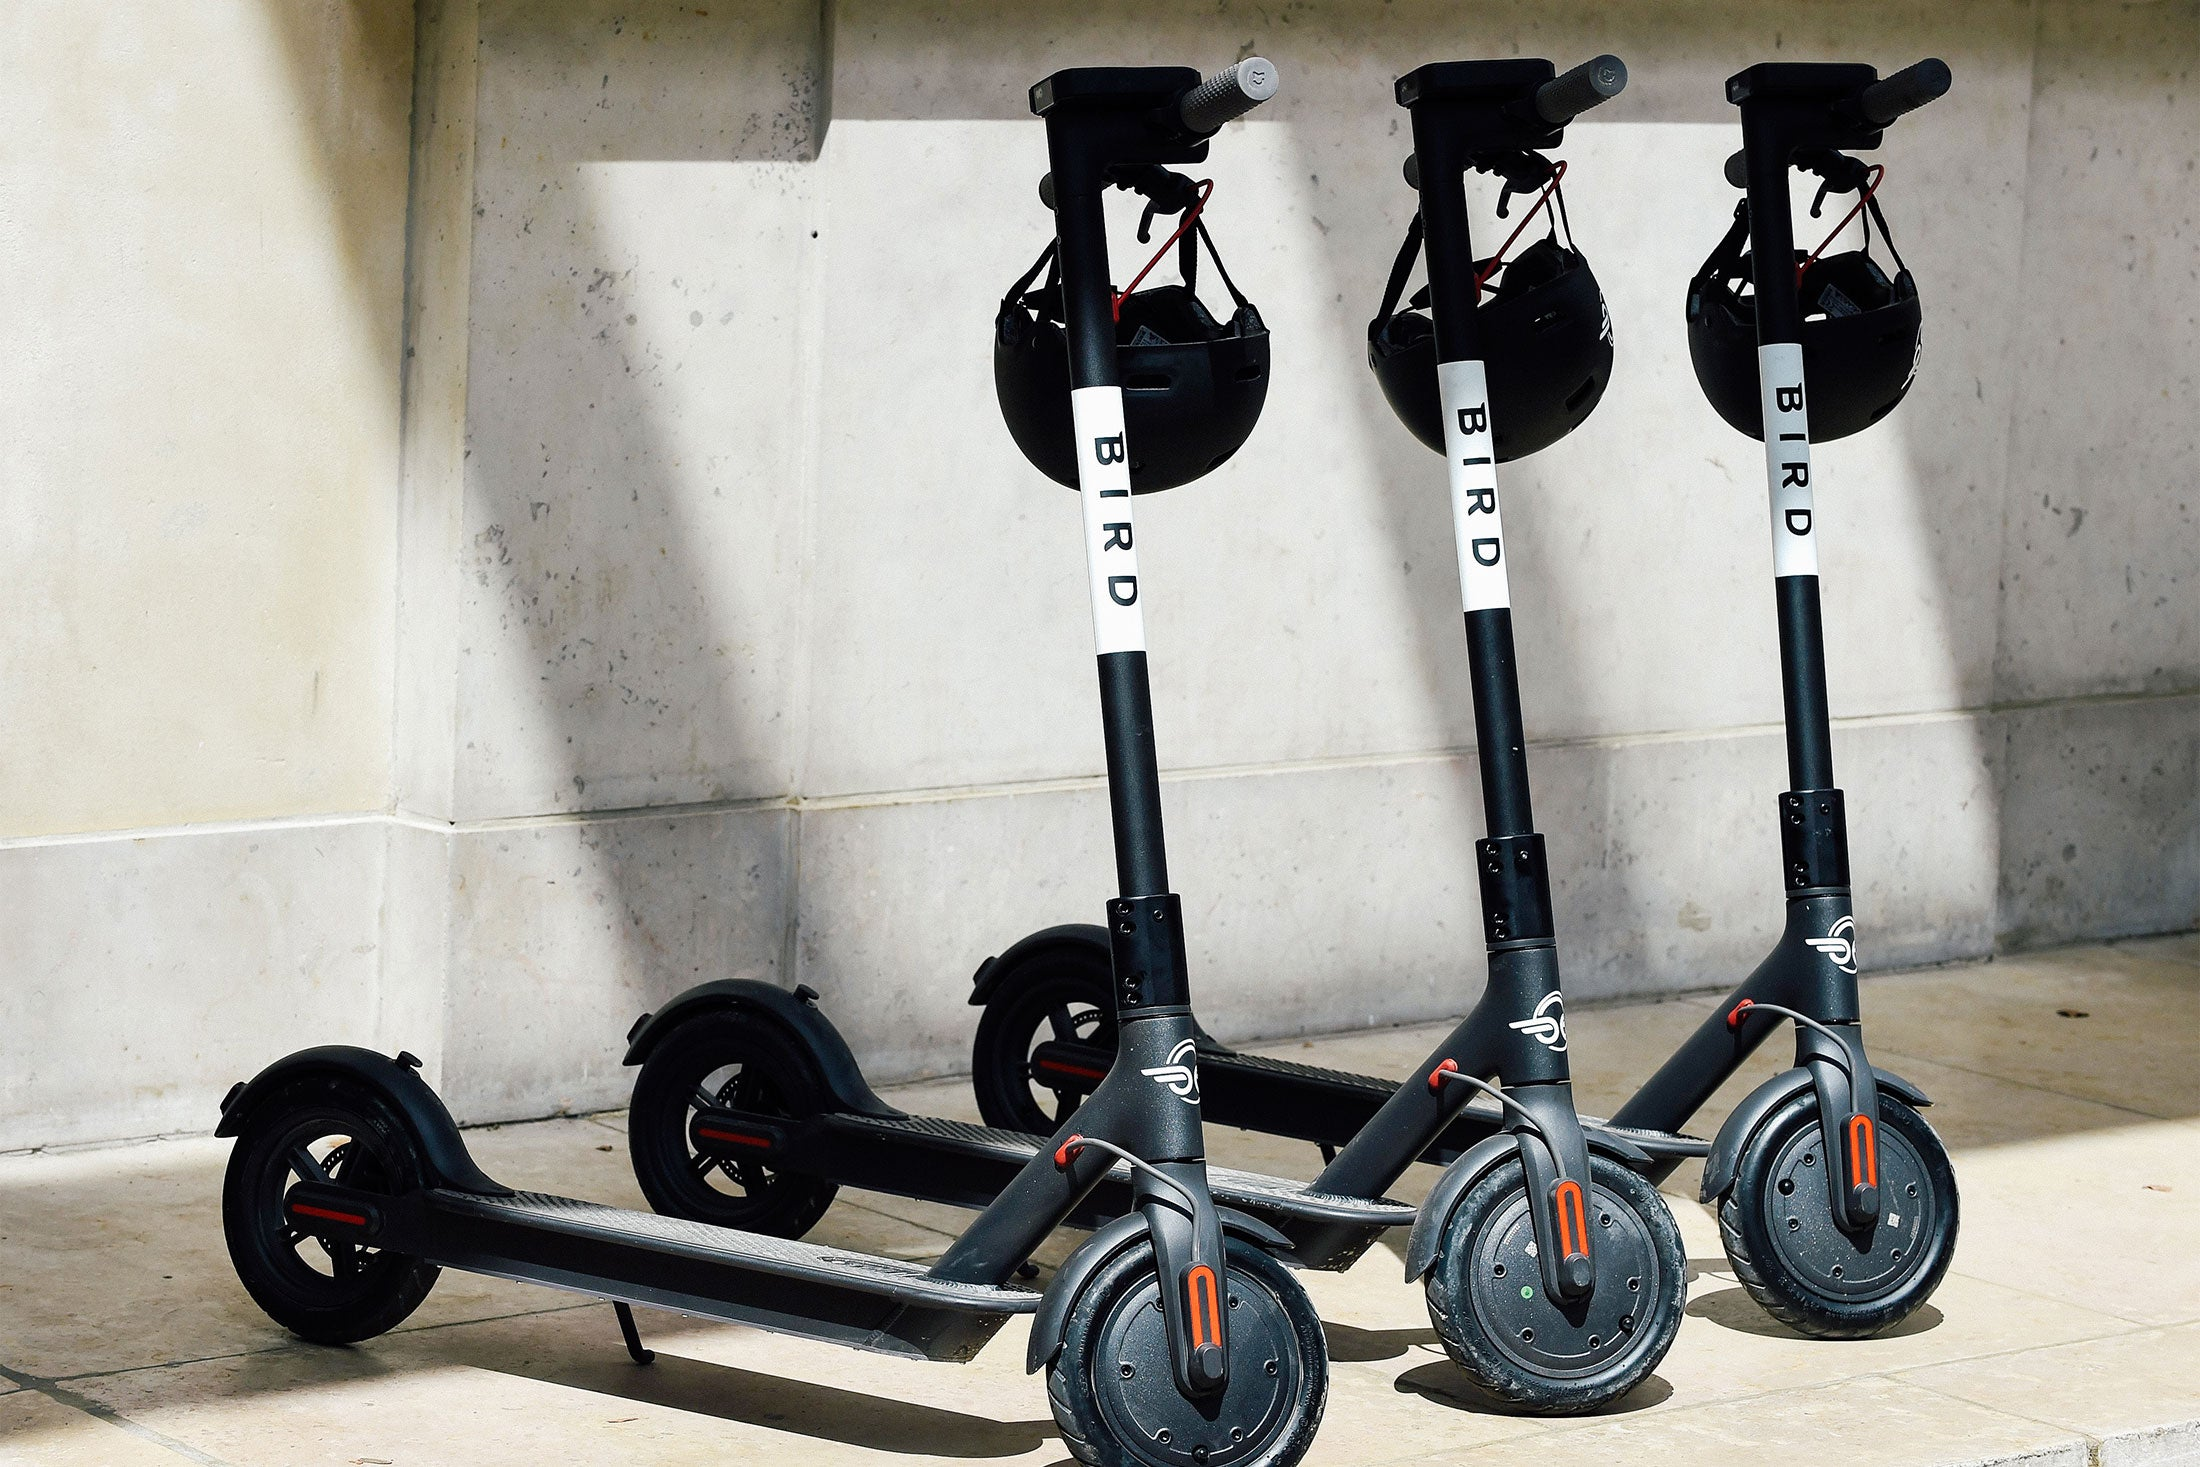 Three bird scooters with helmets hanging from the handlebars.